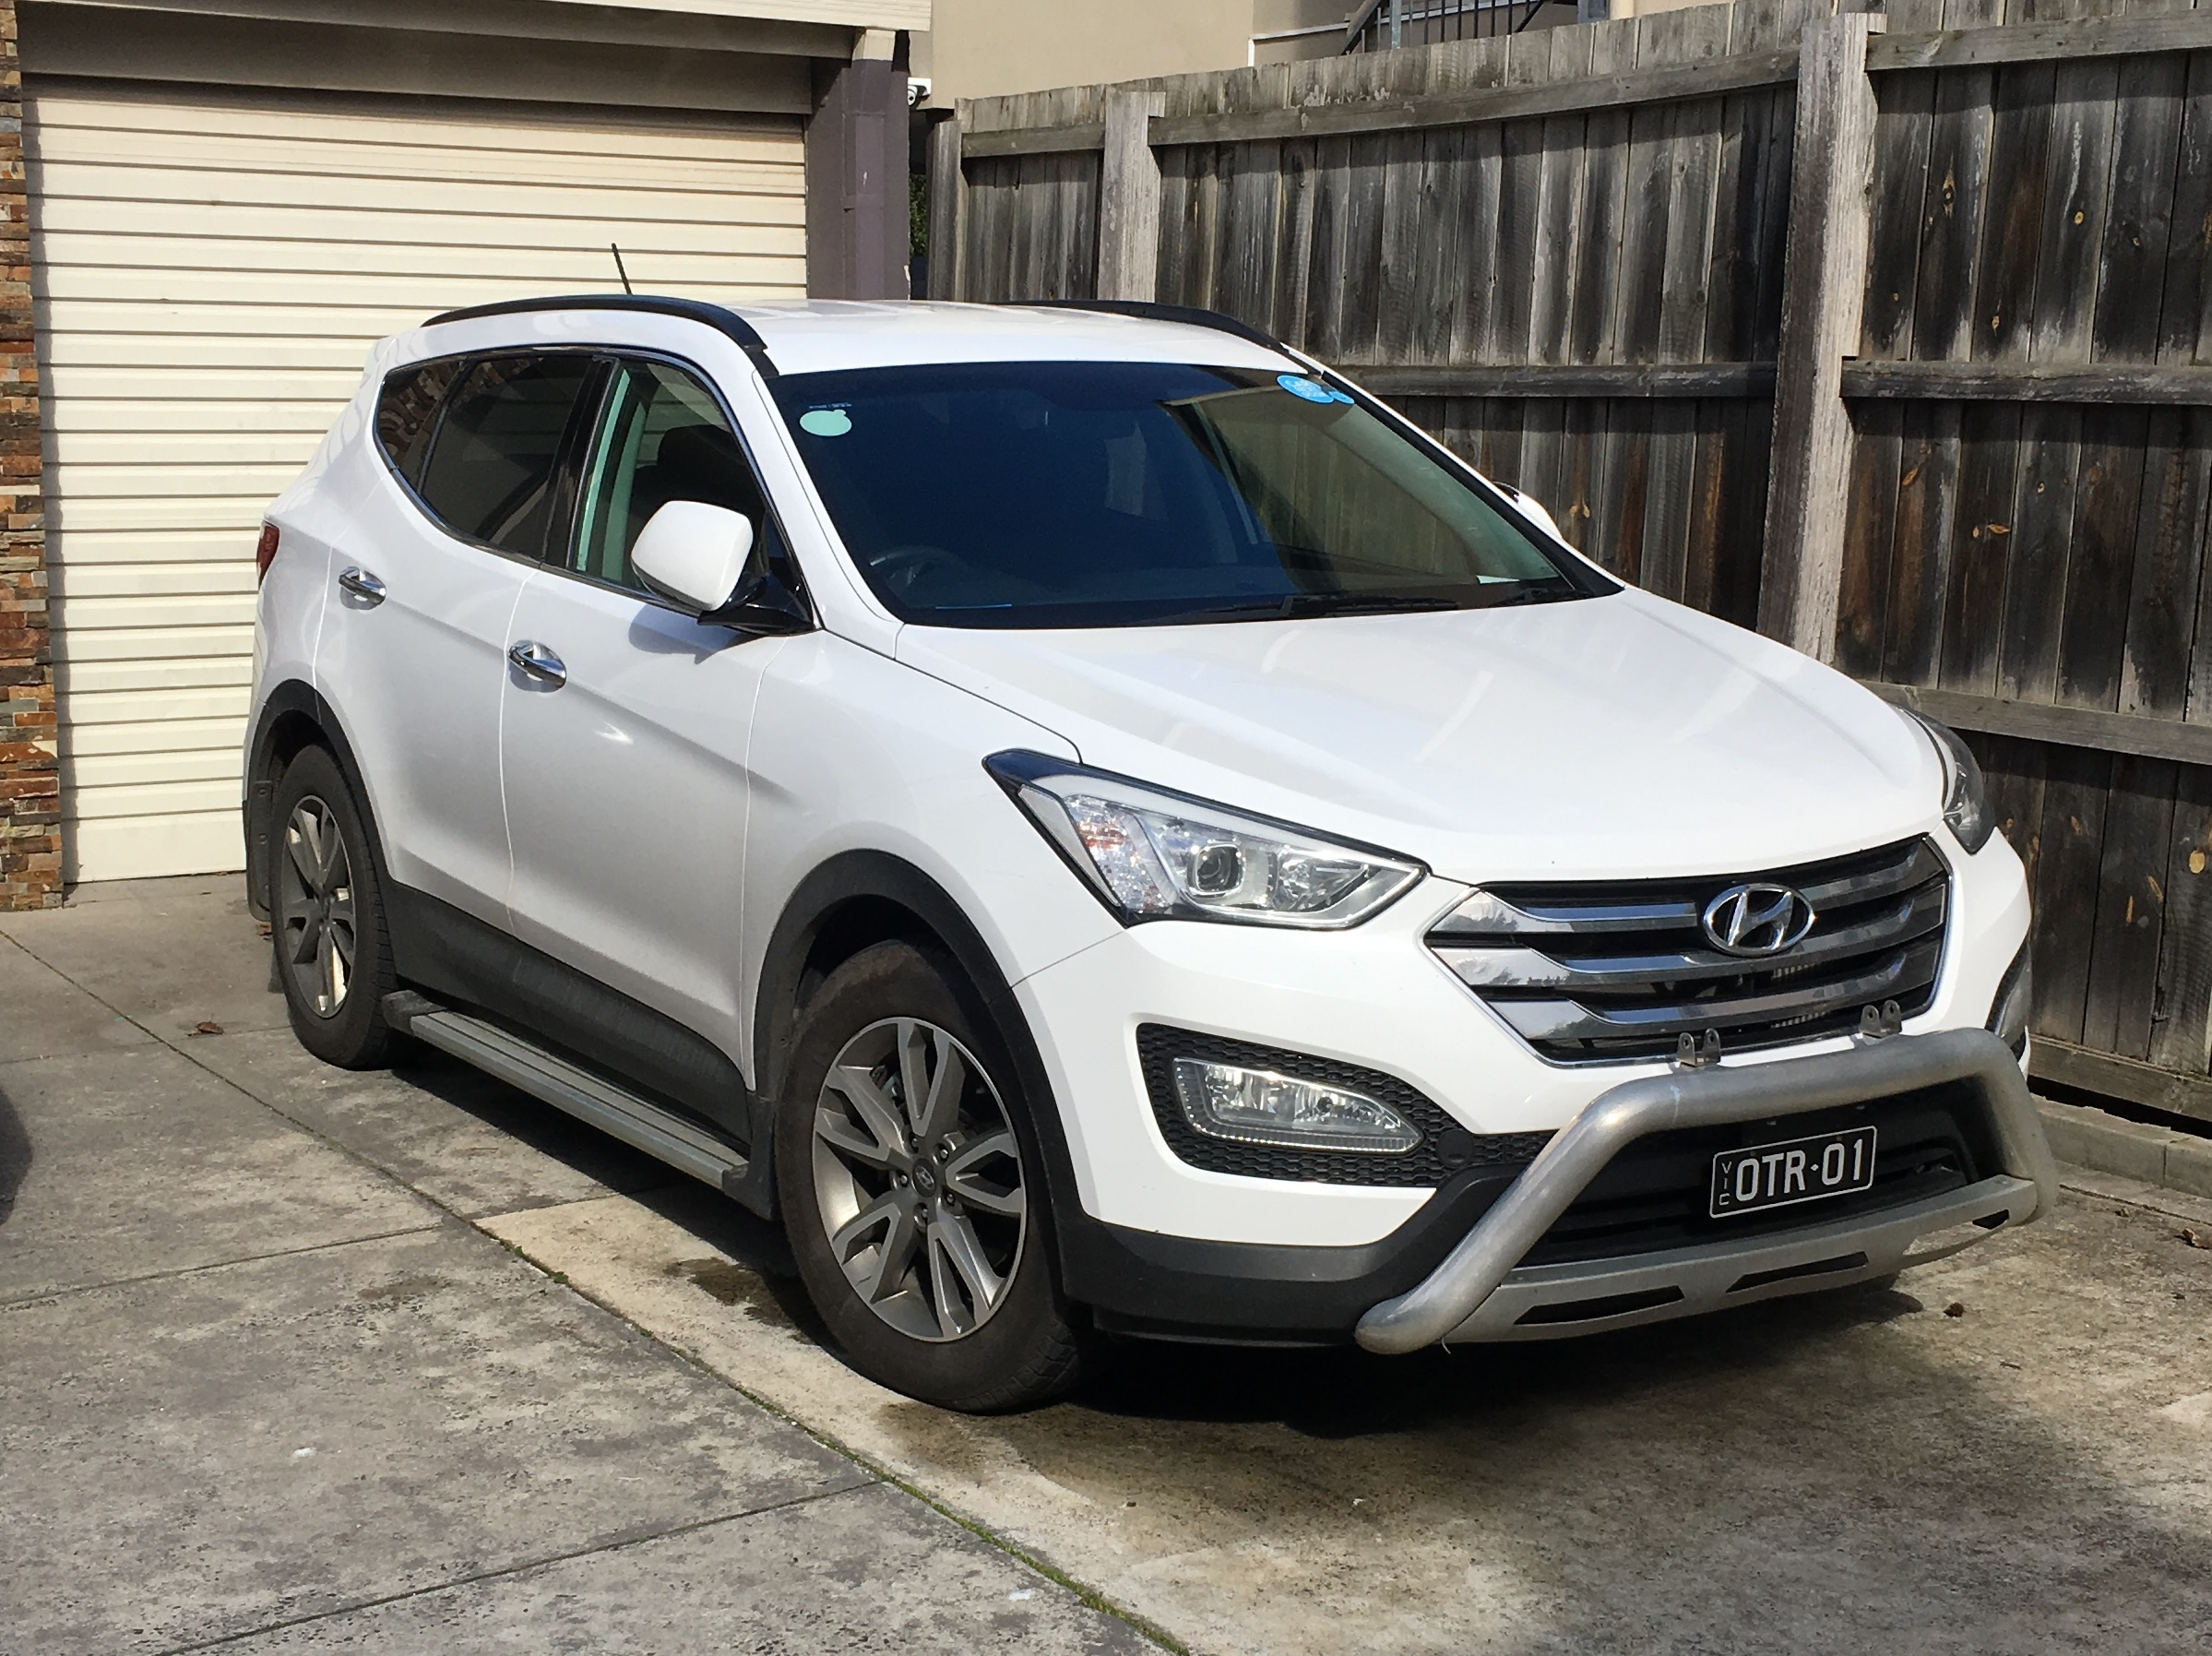 Picture of Benlee's 2014 Hyundai Santafe